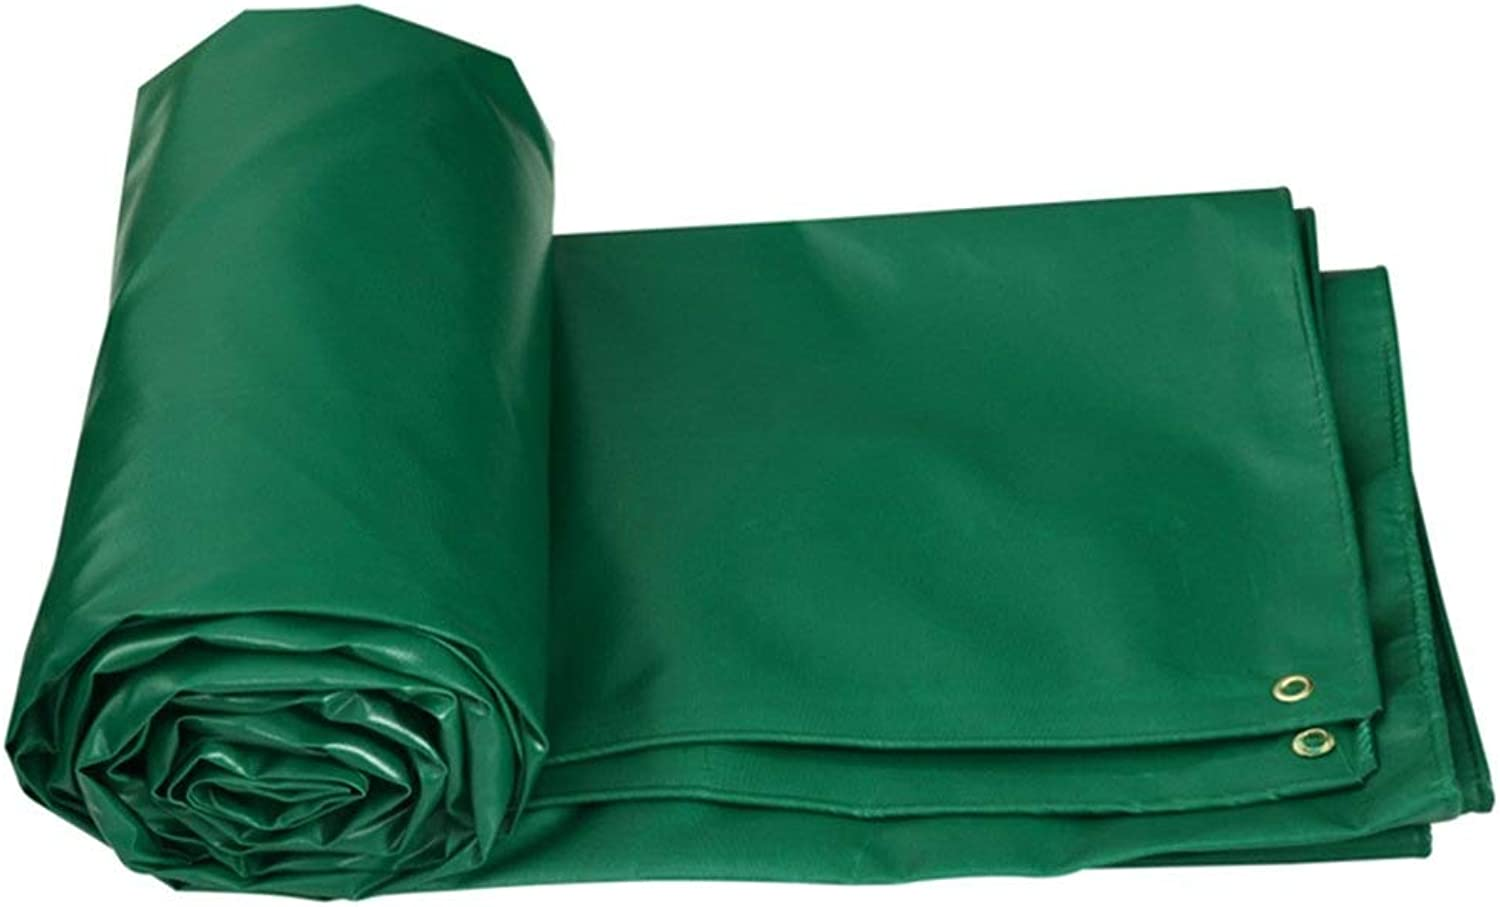 Waterproof Tarpaulin, Tarp Ground Sheet Cover Tent Shelter Thicken PVC Heavy Duty, 5 colors, 520G M2 GAOFENG (color   Green, Size   4x5M)